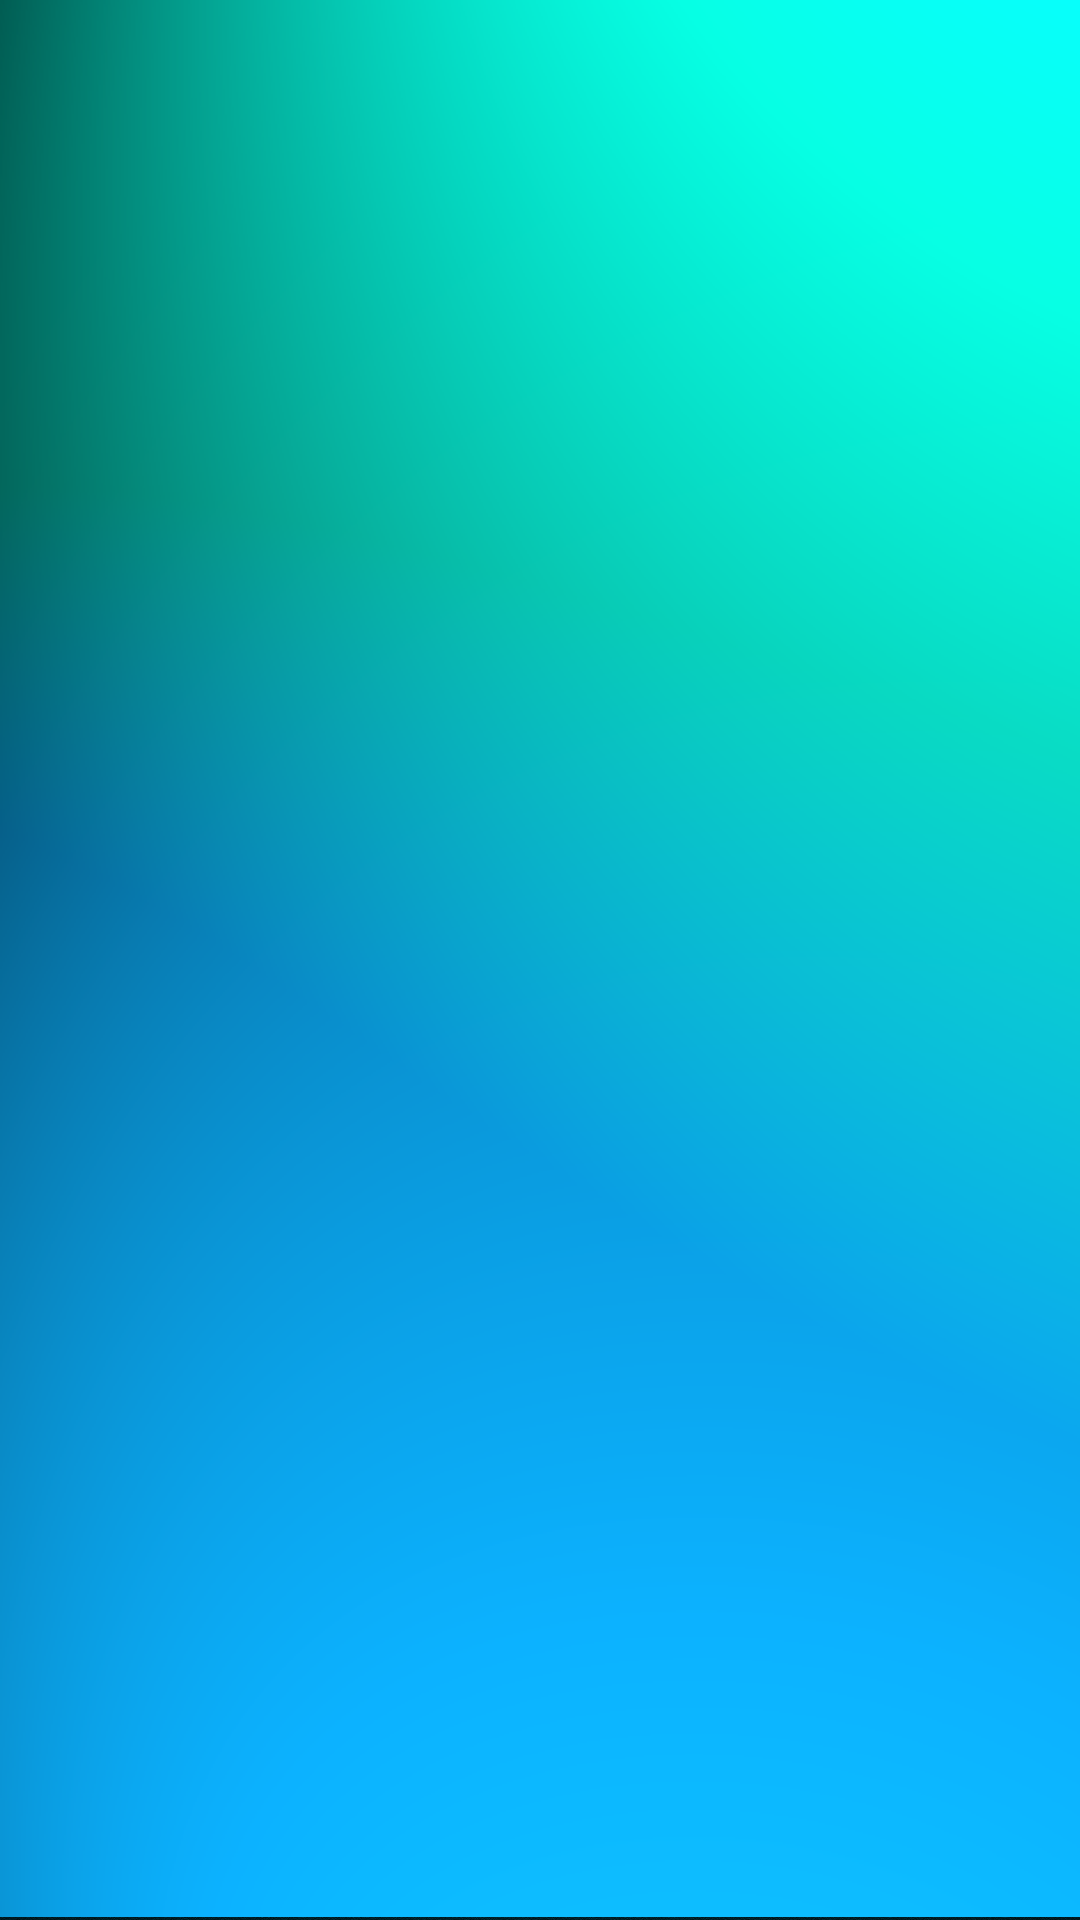 green blue wallpaper  Green blue htc one wallpaper - Best htc one wallpapers